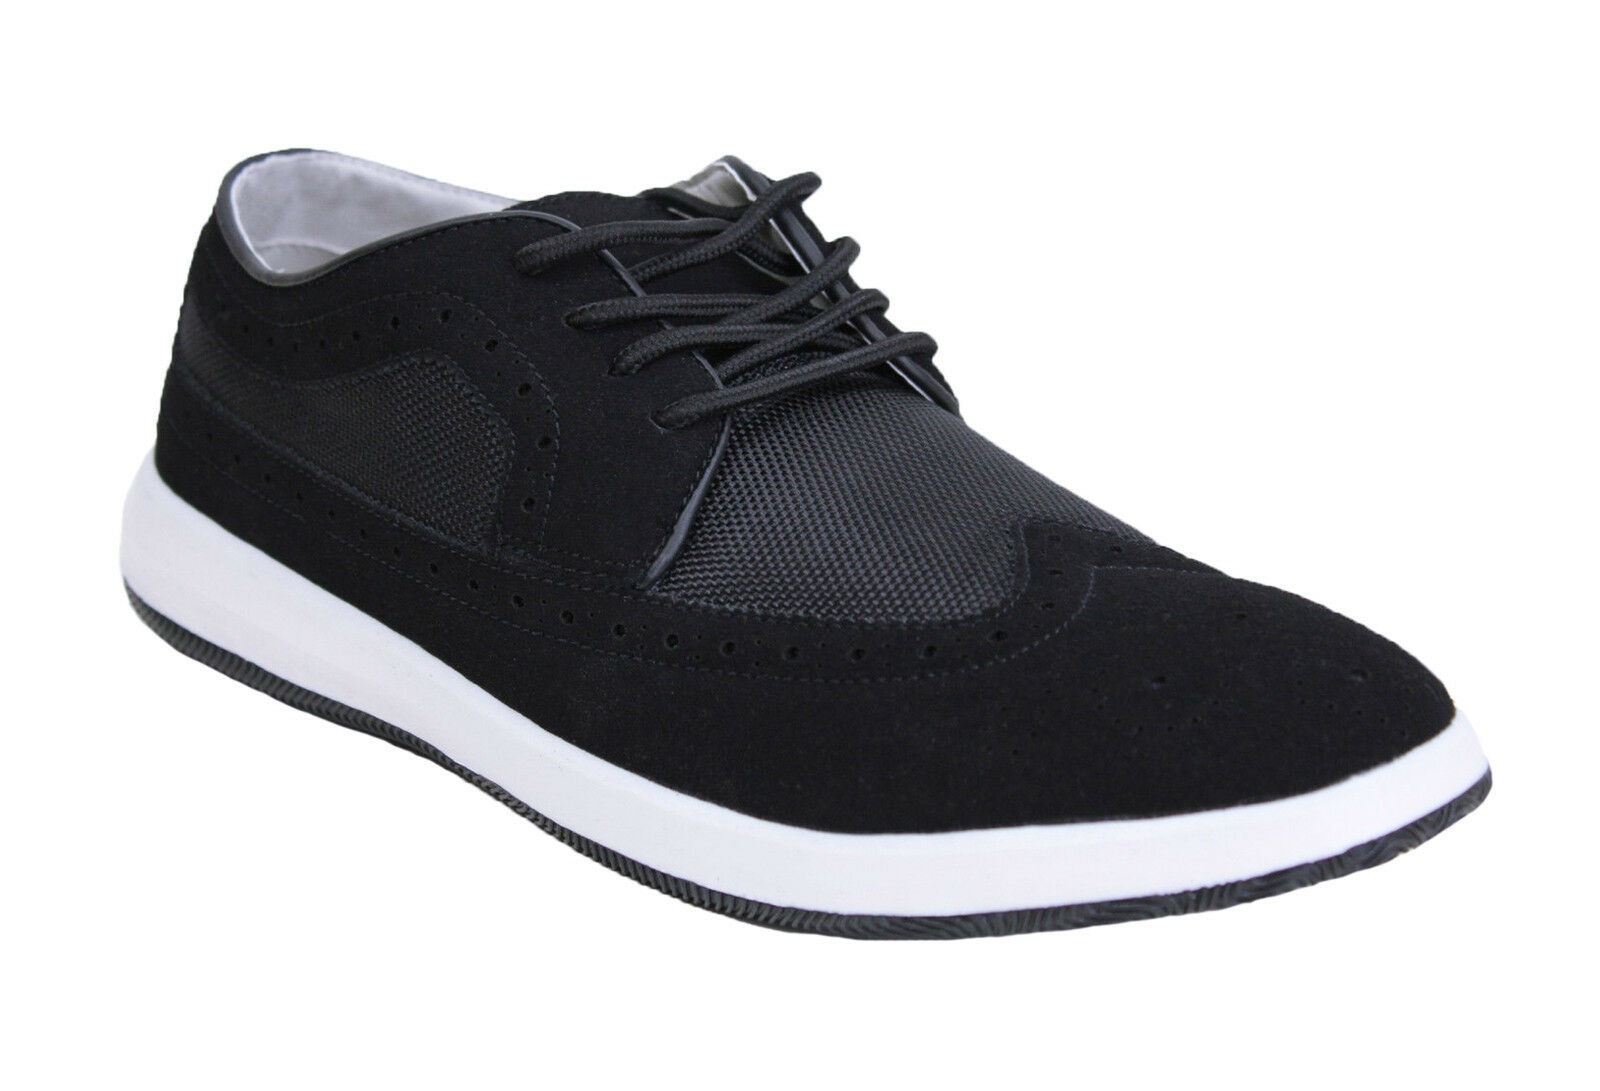 SHOES OXFORD MAN DIAMOND BLACK CASUAL ECO-LEATHER SUEDE NUOVE da 40 a 44